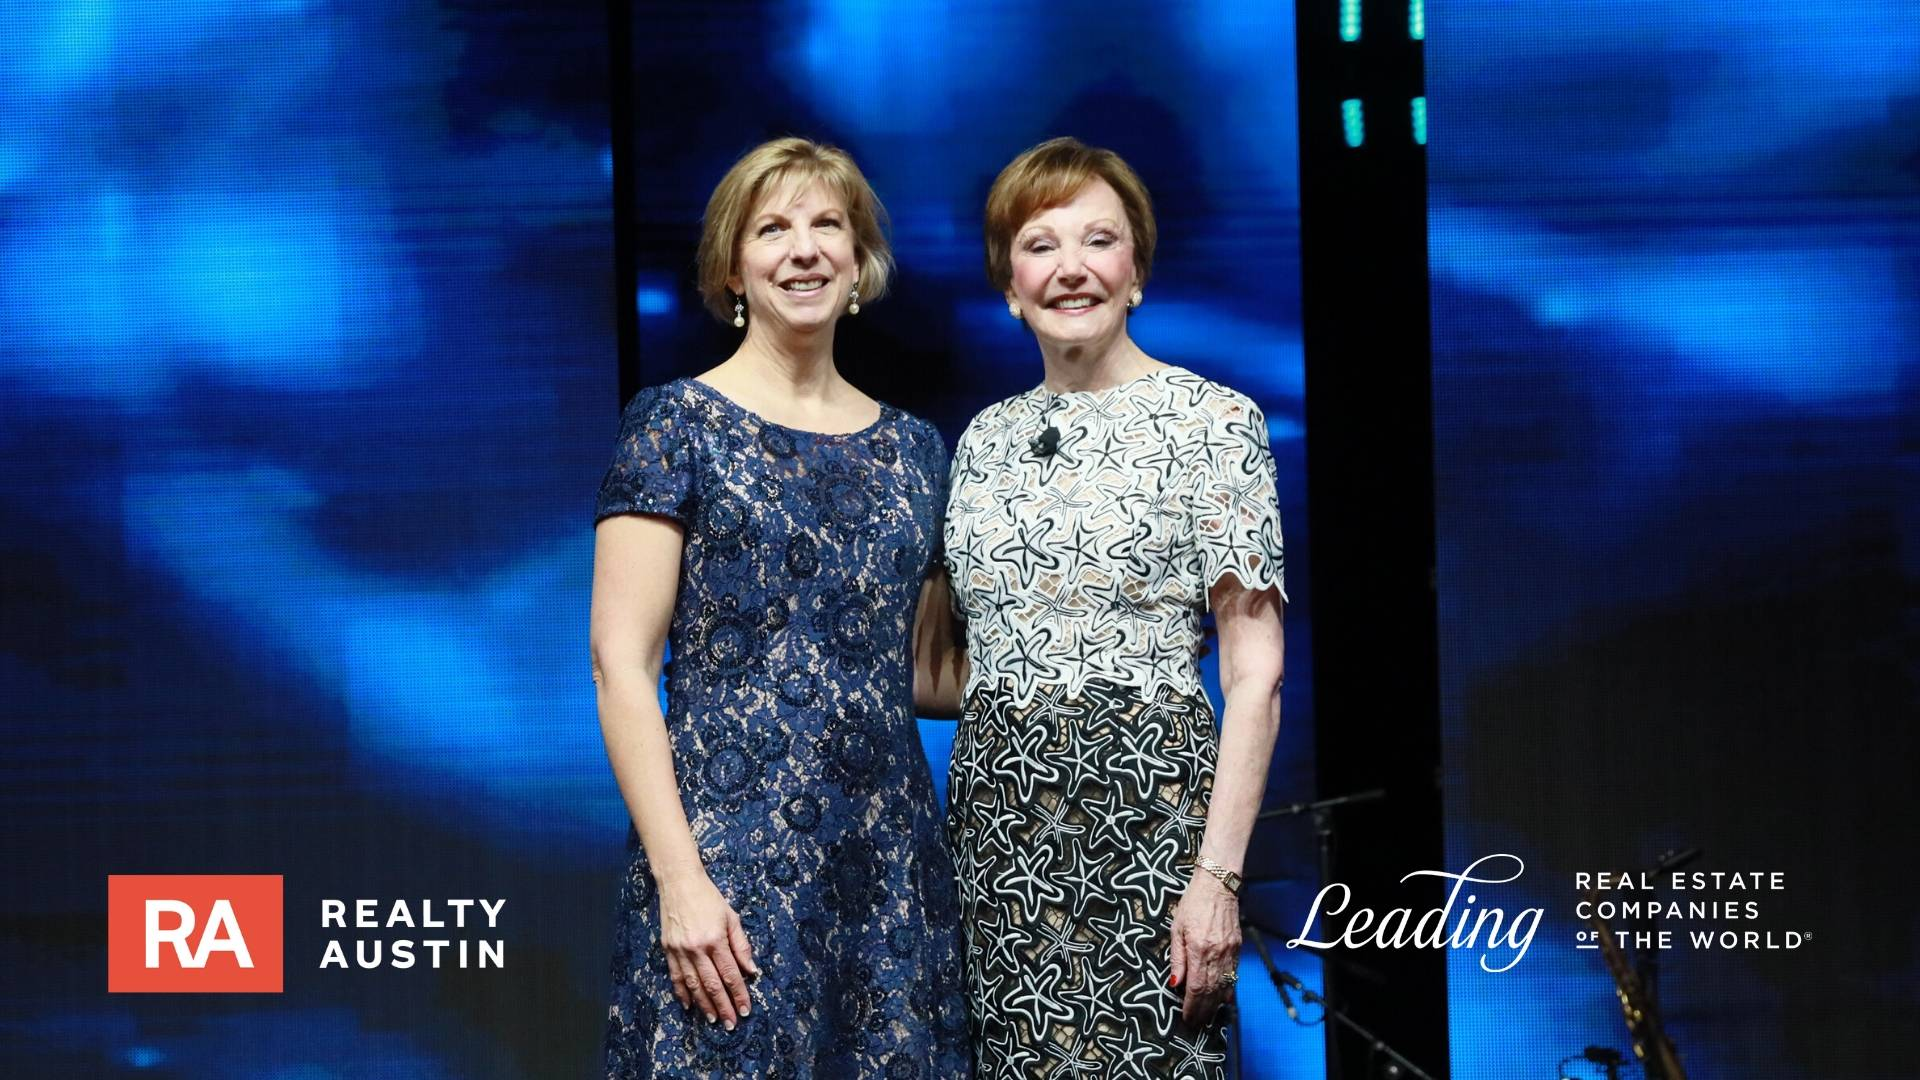 Leading Real Estate Companies of the World® Honors Realty Austin at 2020 Annual Conference